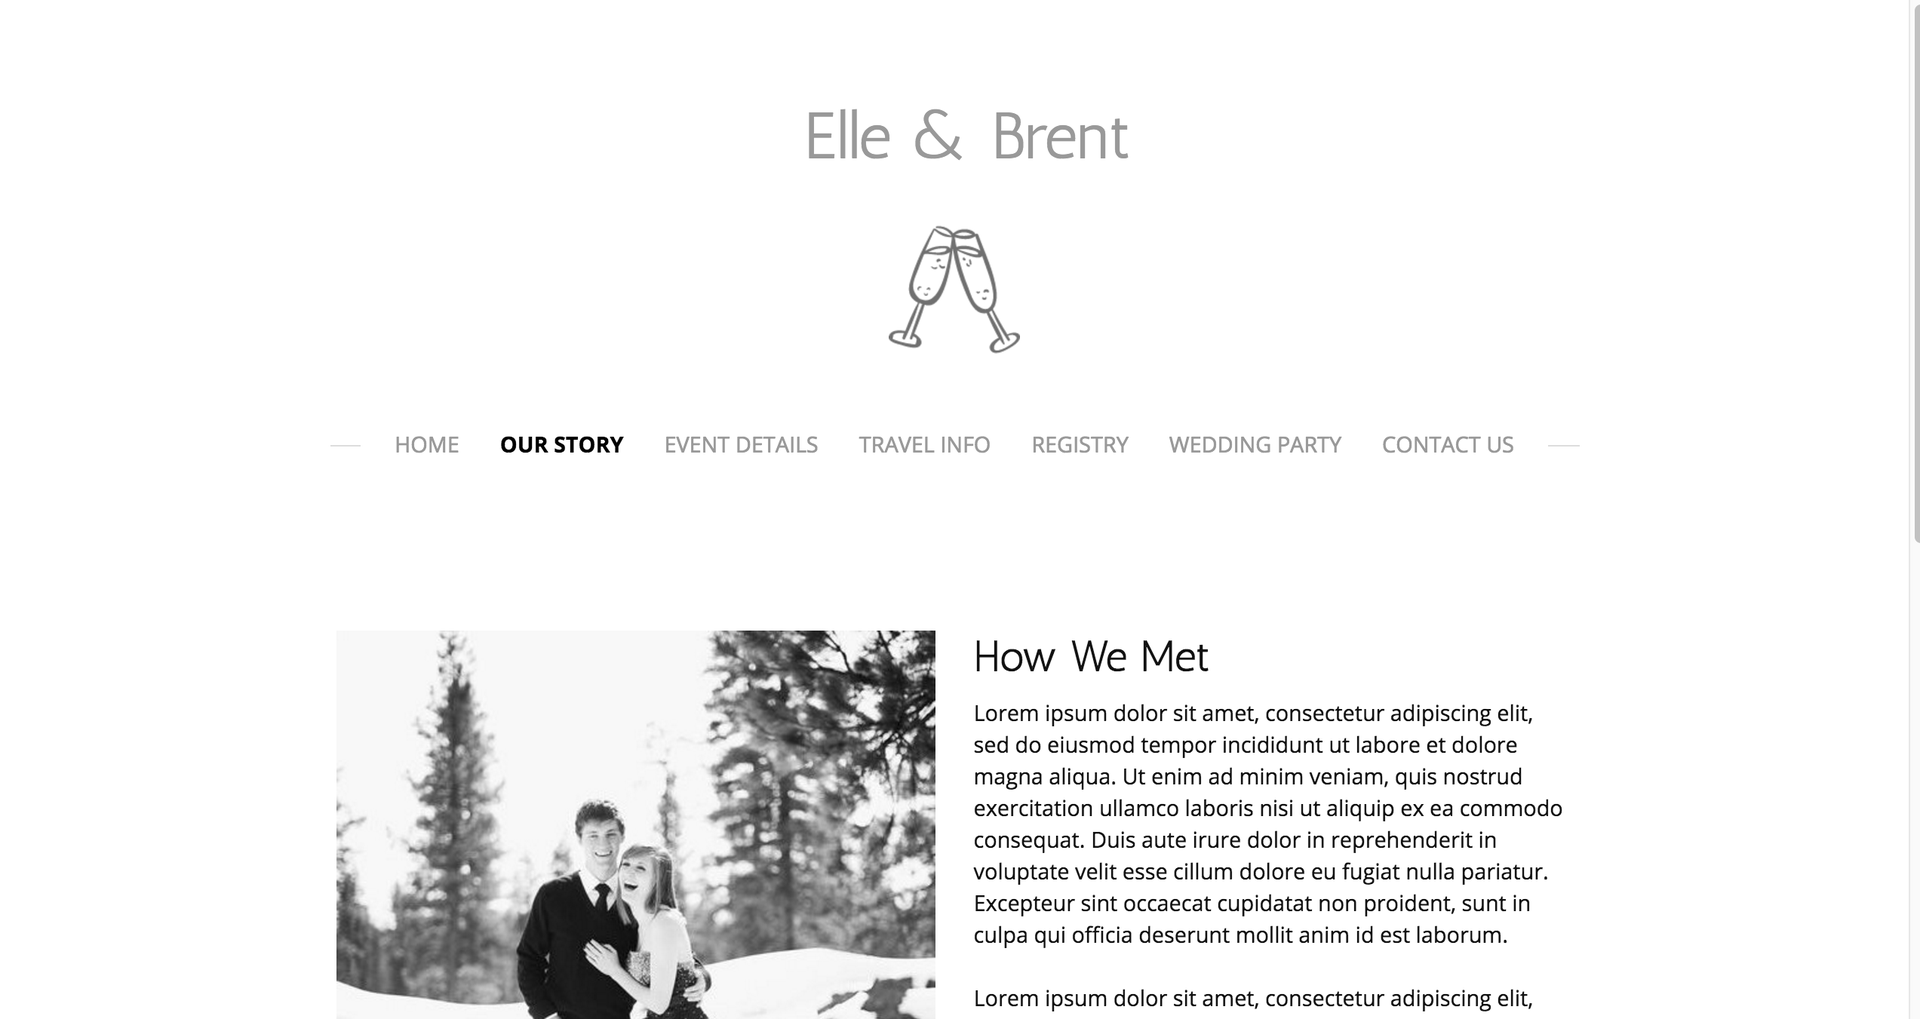 Wedding Websites Ideas: Create A Wedding Website: Templates & Ideas